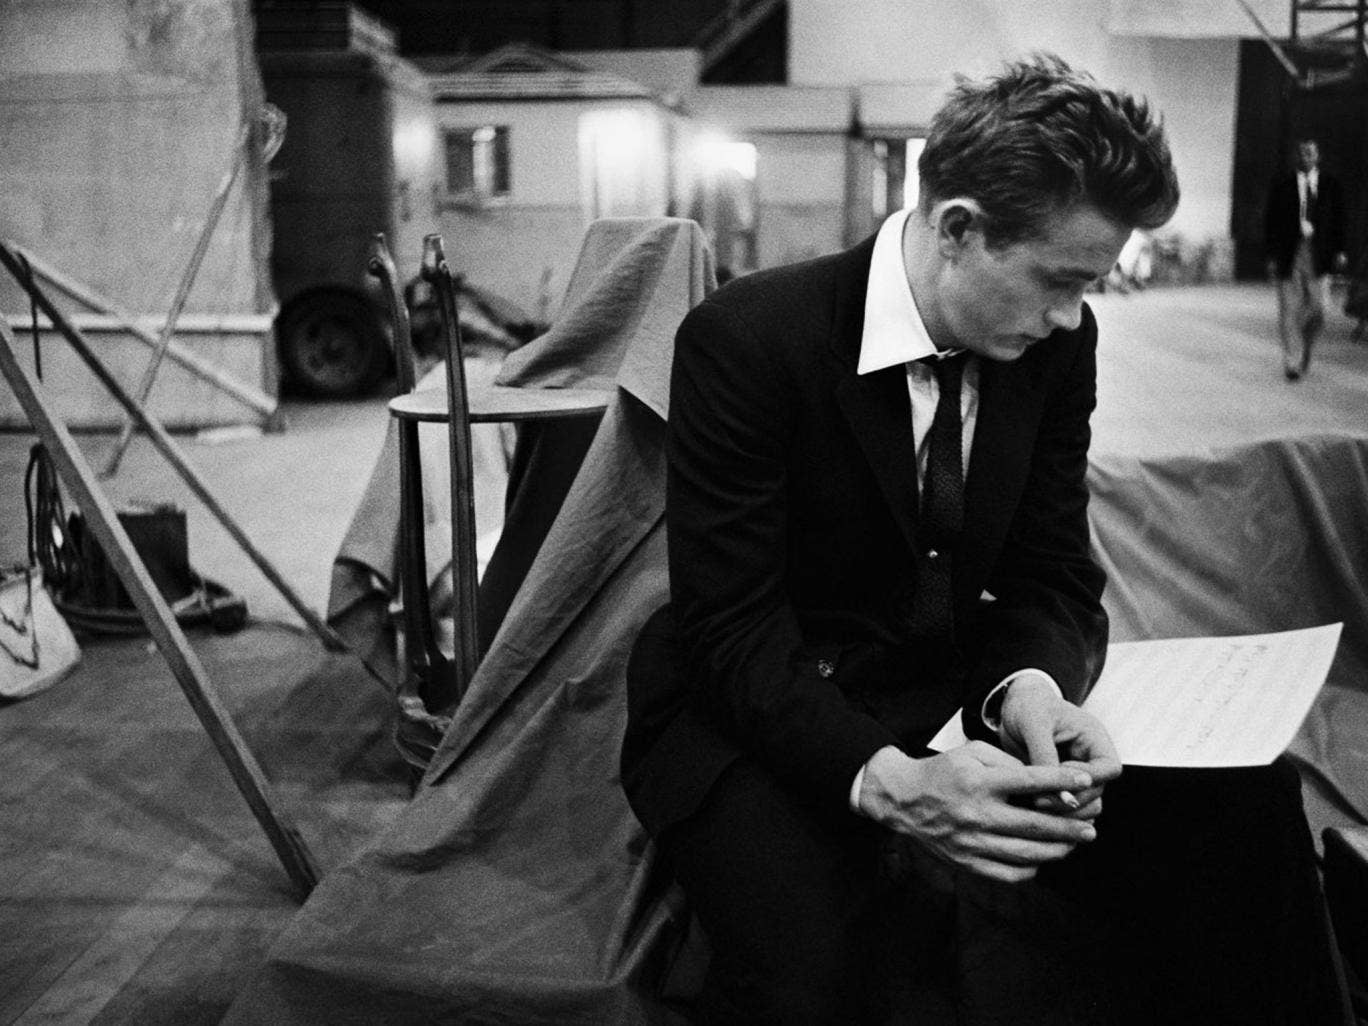 James Dean on the set of 'Rebel without a Cause', 1955